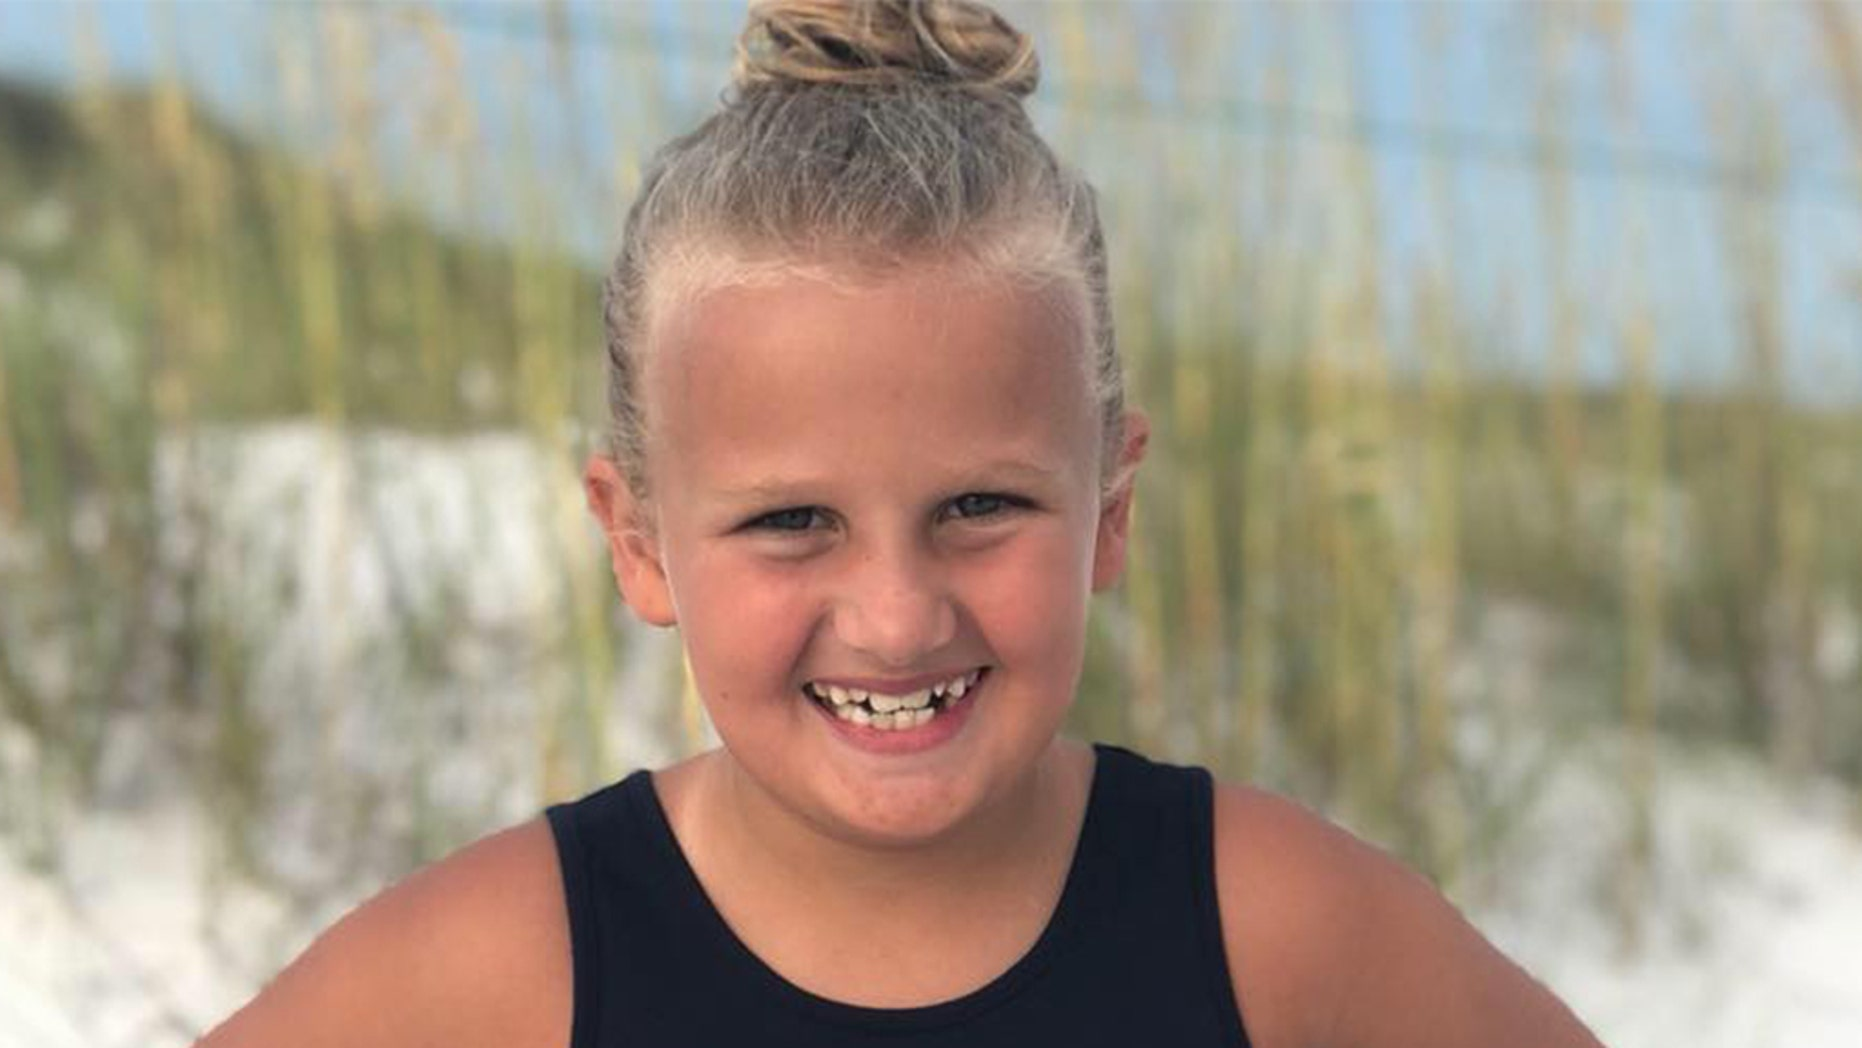 Sable Gibson, 10, died one day after diagnosing strep throat and influenza. (Facebook)